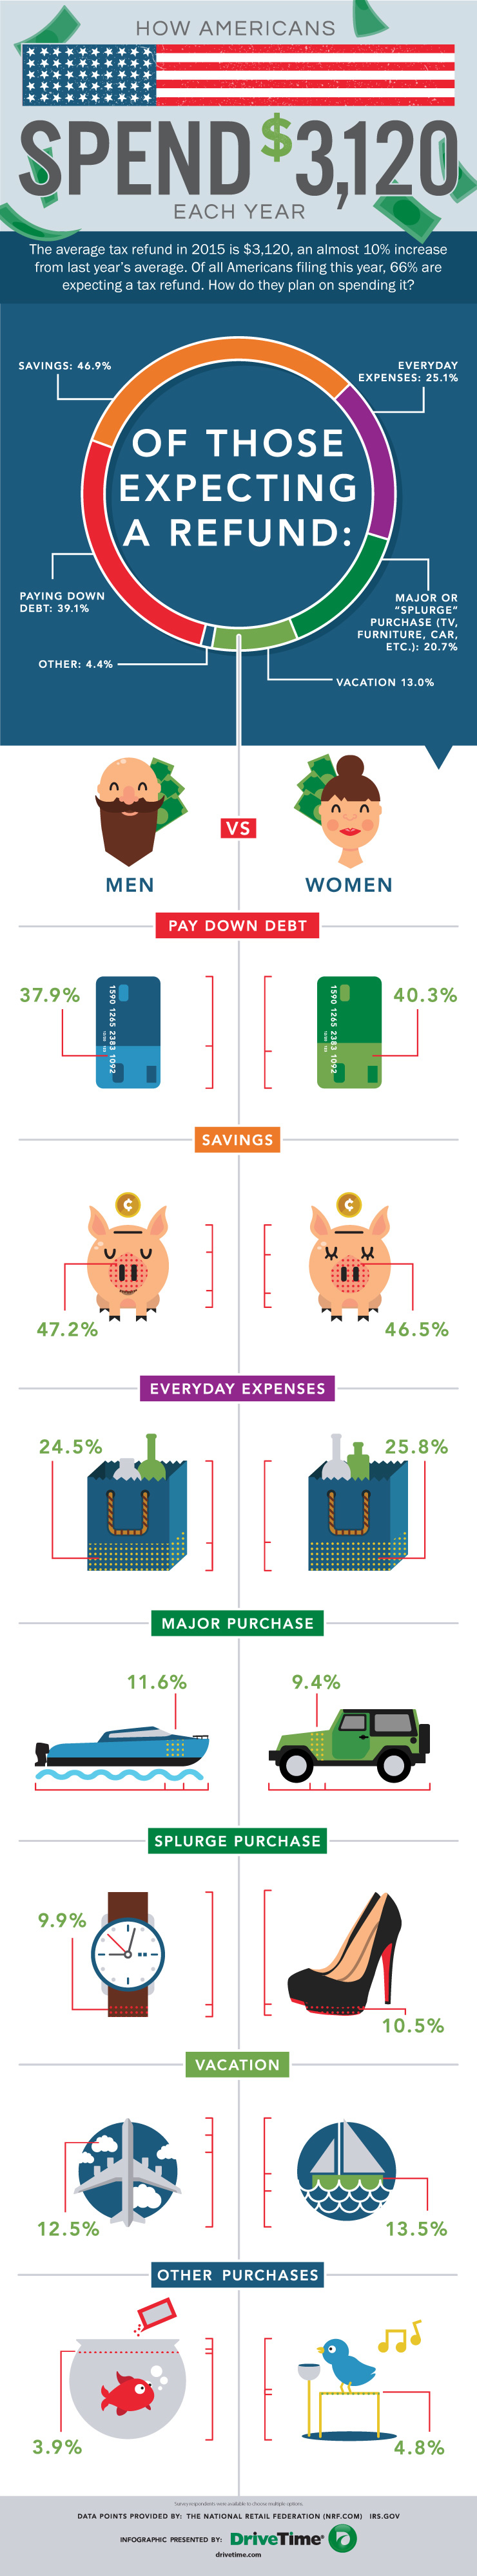 Tax Refund #Infographic | www.TheHeavyPurse.com